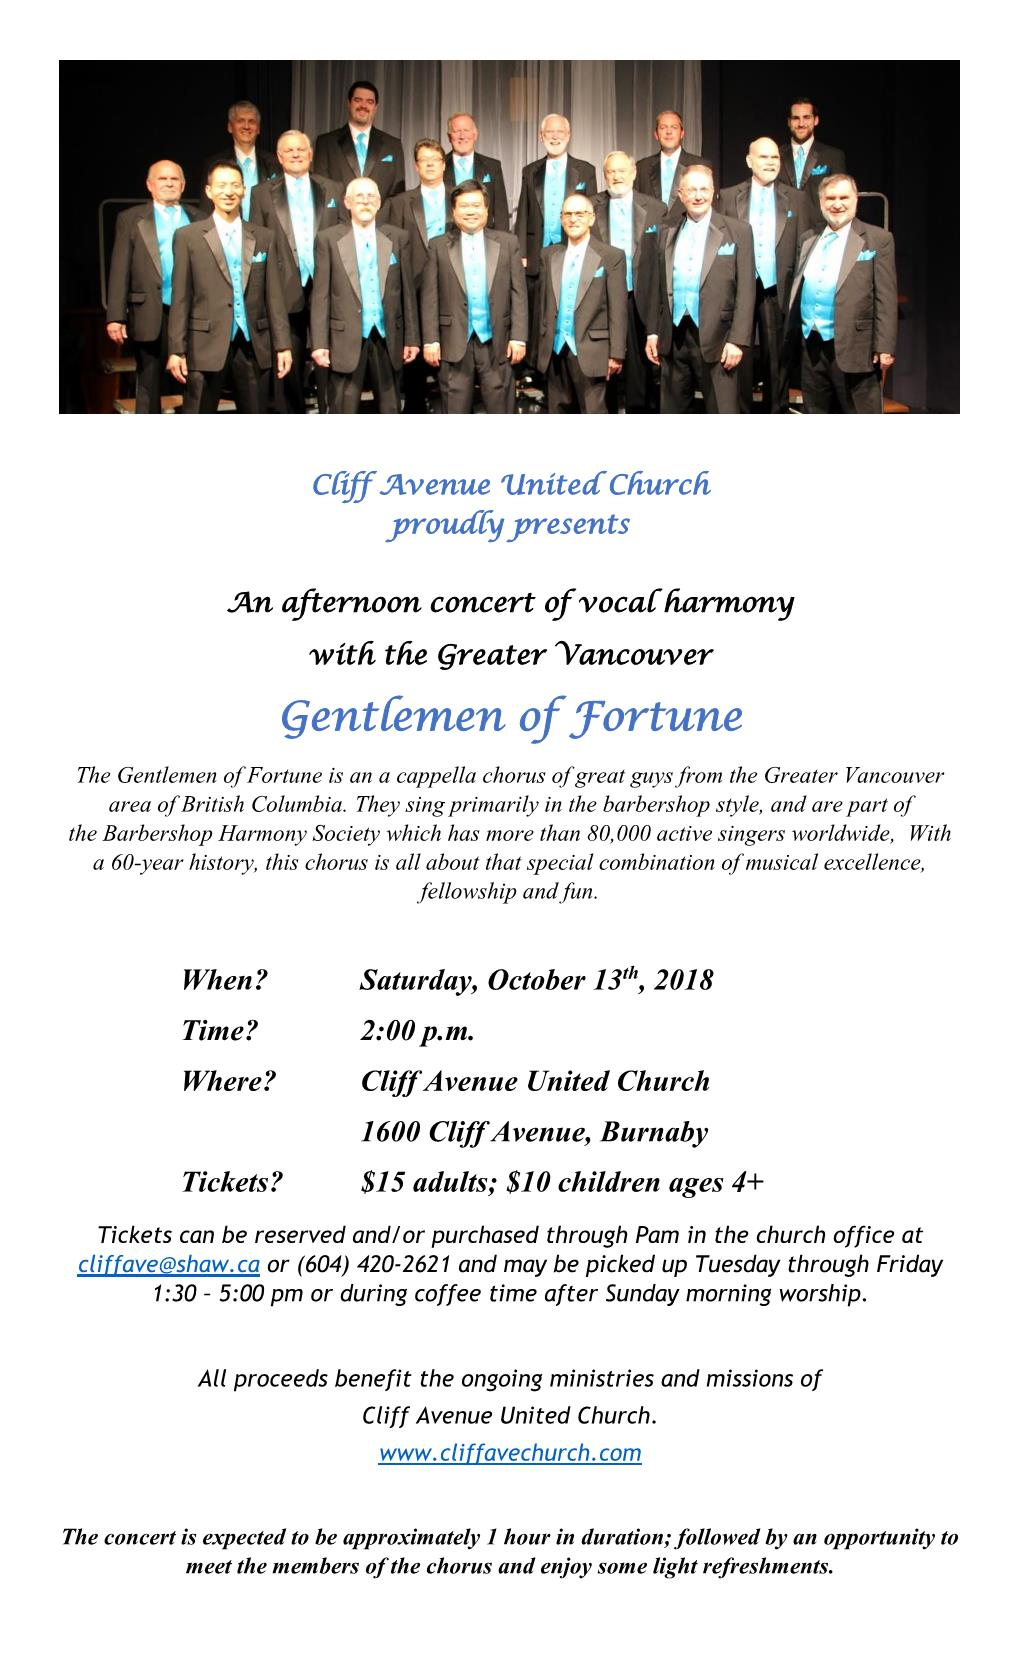 An Afternoon Of Vocal Harmony with the Greater Vancouver Gentlemen of Fortune @ Cliff Avenue United Church (Burnaby, BC)